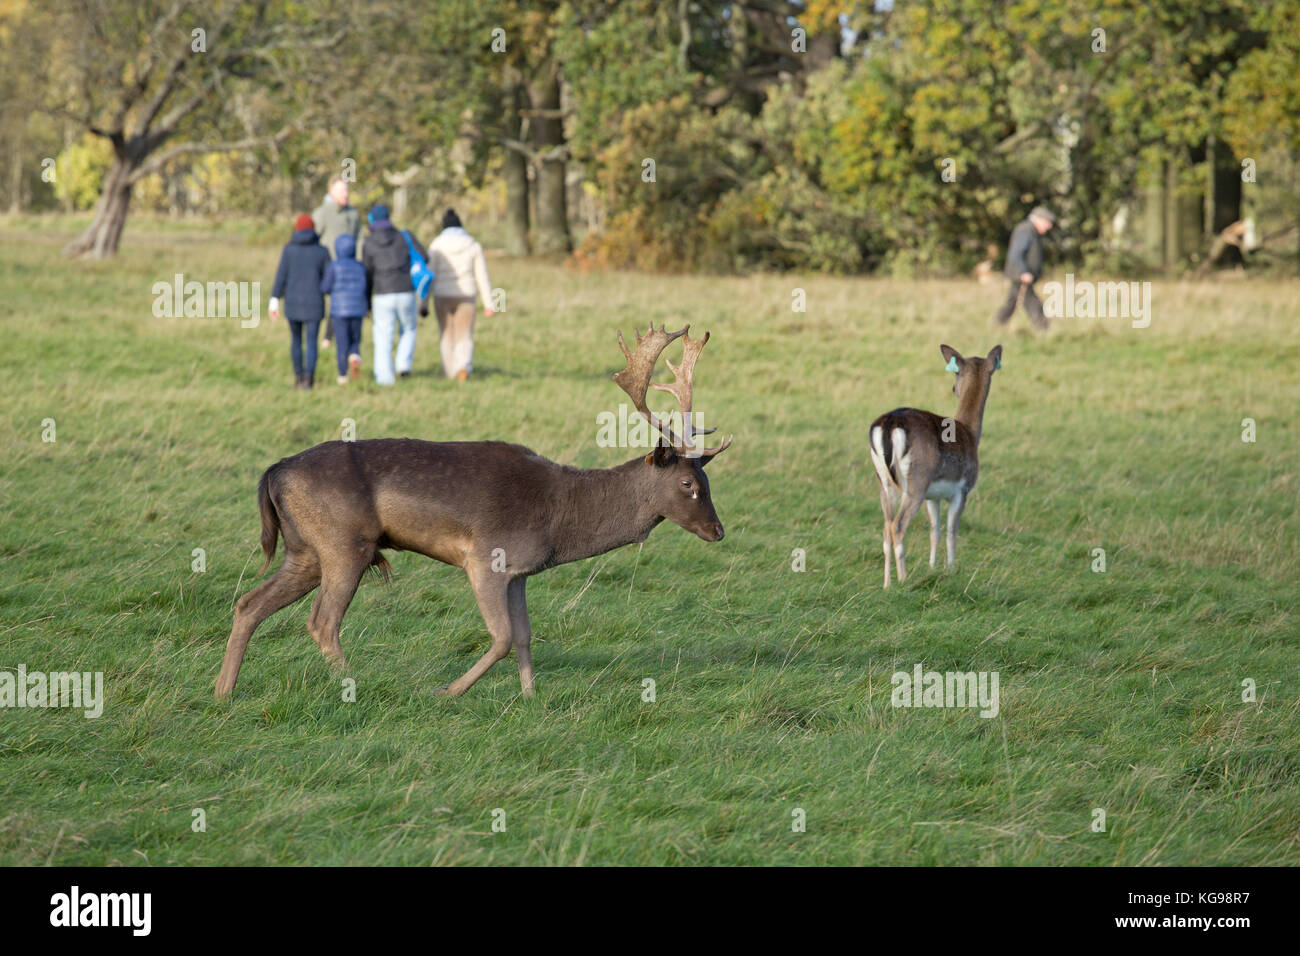 fallow deer (Dama dama) and people at Phoenix Park, Dublin, Ireland - Stock Image